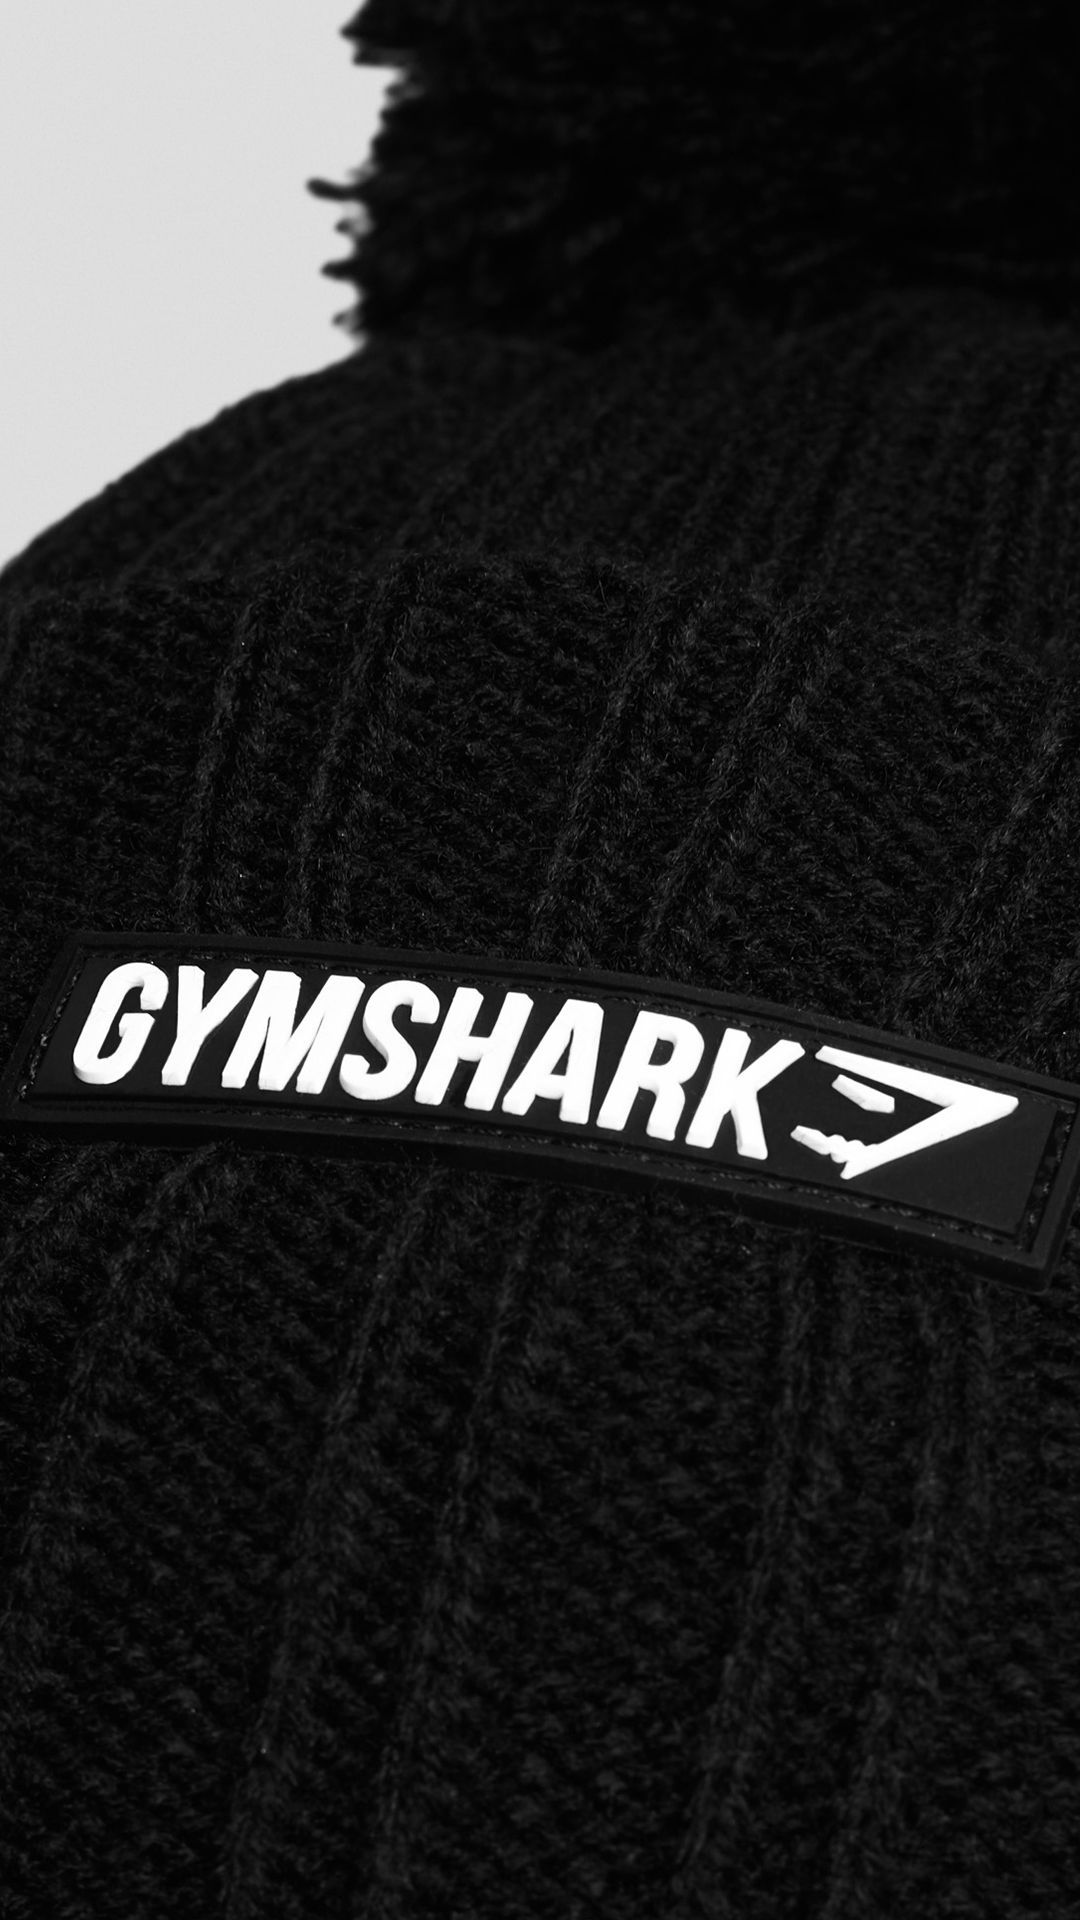 Gymshark  Accessories  Accessory  Bag  Bottle  Towel  Sweat  Holdall   Backpack  Carry  Easy  New  Fitness  Workout  Gym  Black  Hat 8fbd3be34da1d